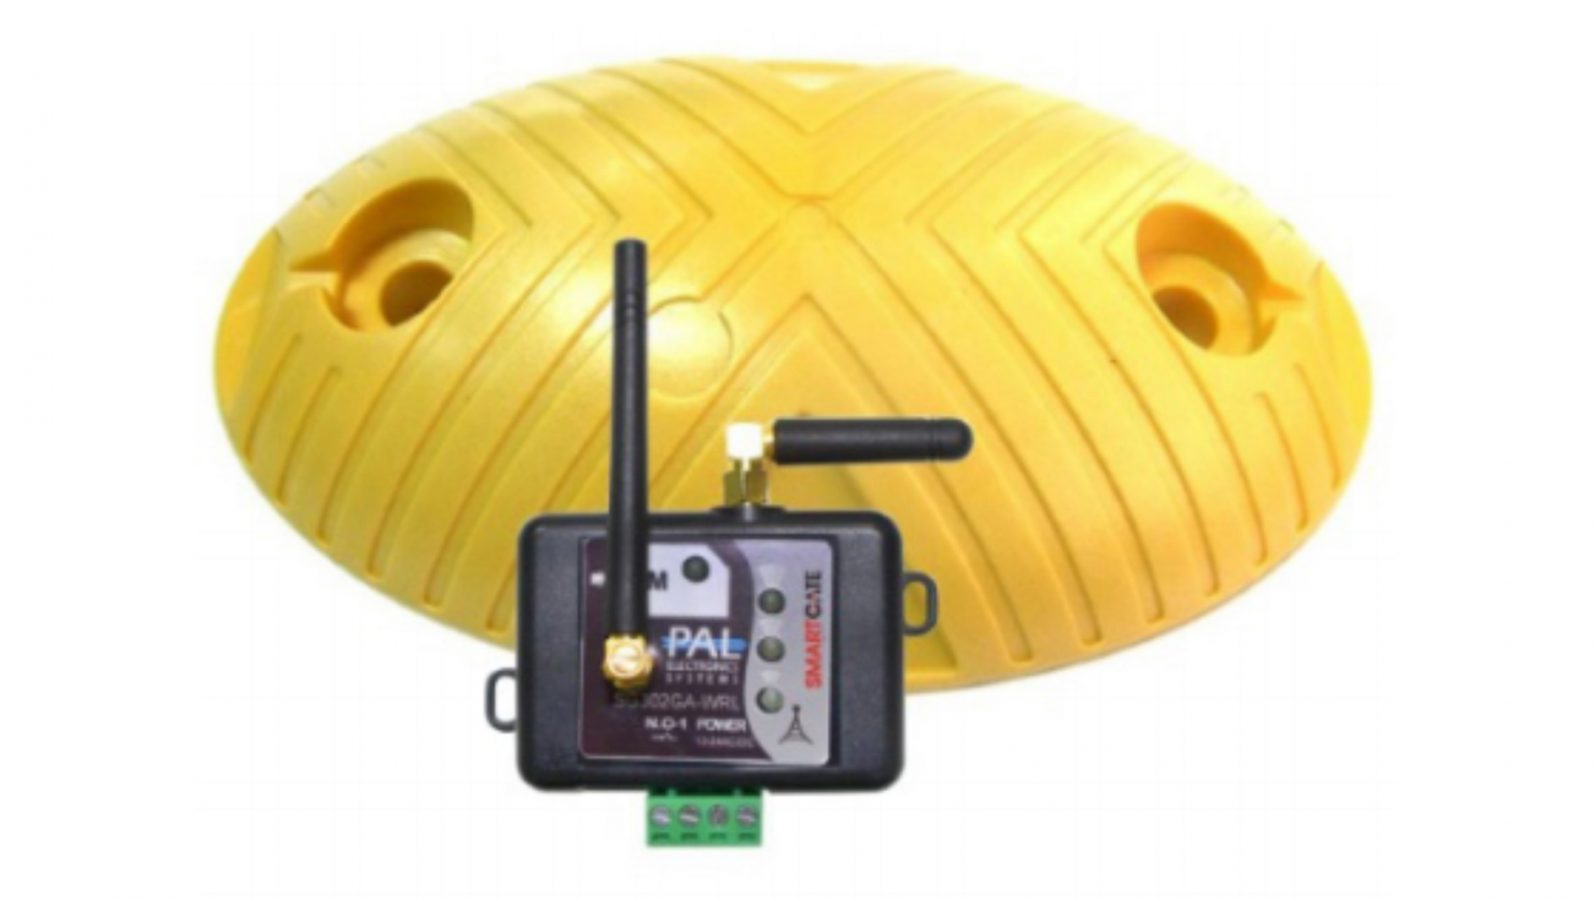 PalGate Wireless Vehicle Detector. Boom gate automation and access control